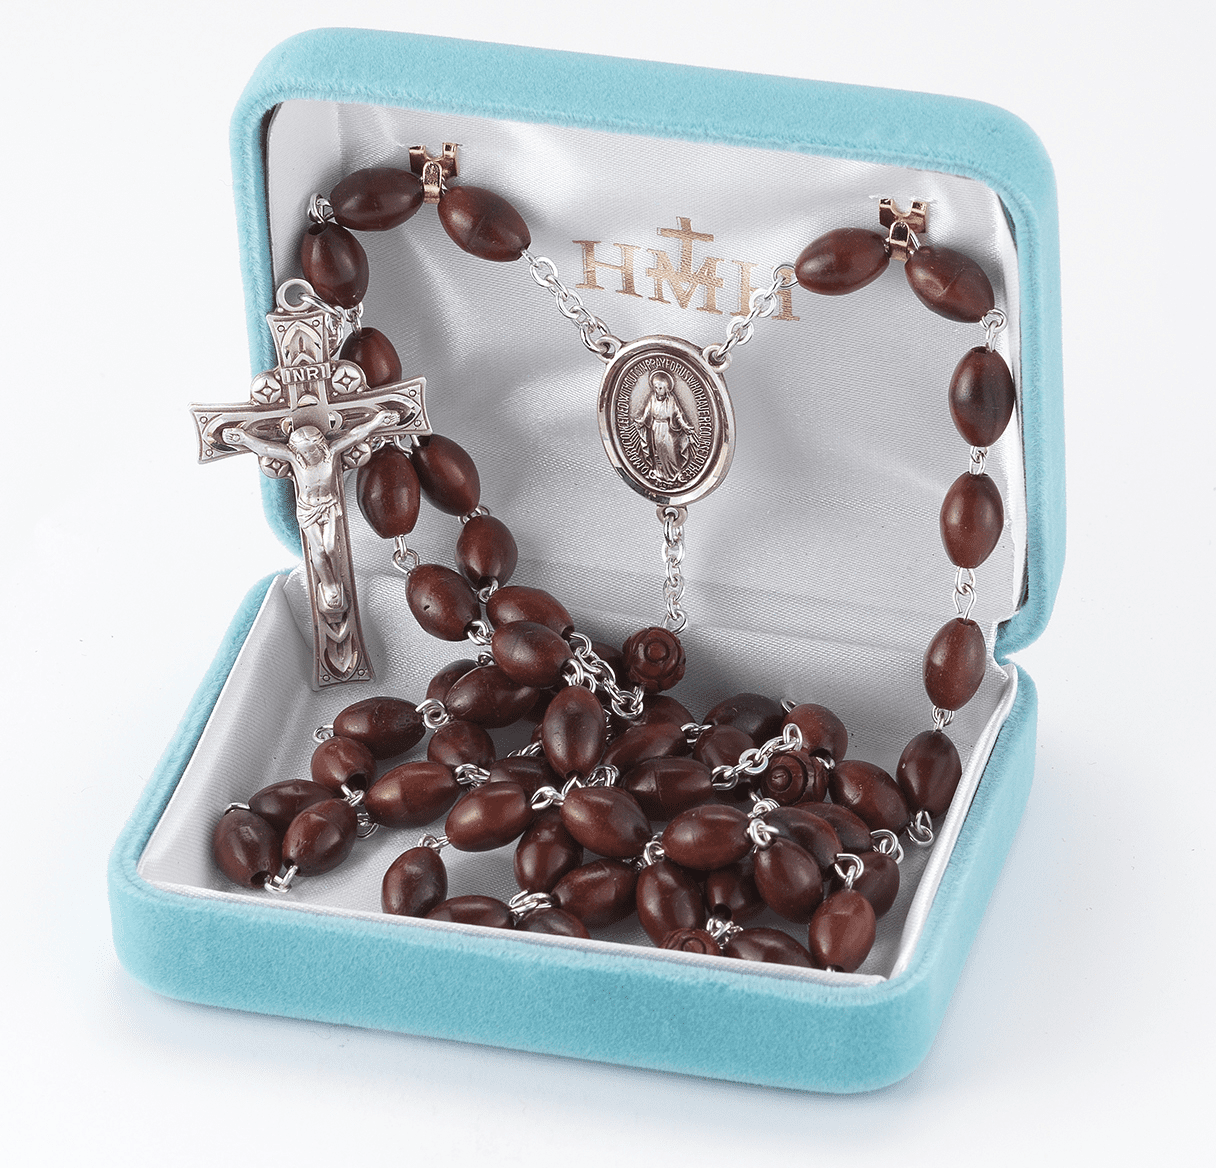 HMH Religious Wood Rosaries